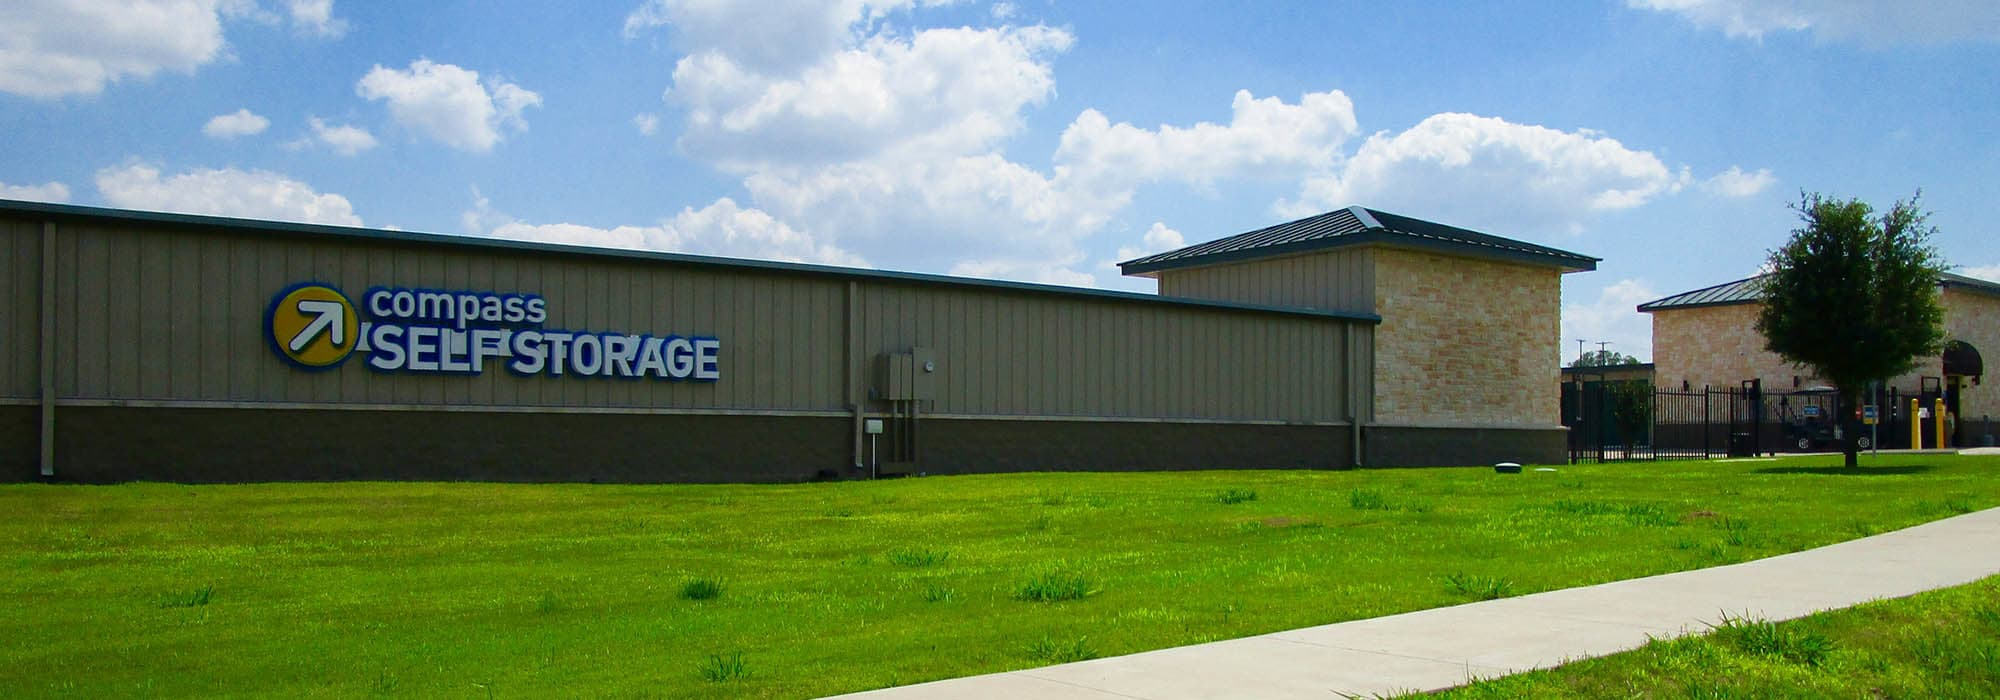 Self storage in Fate TX